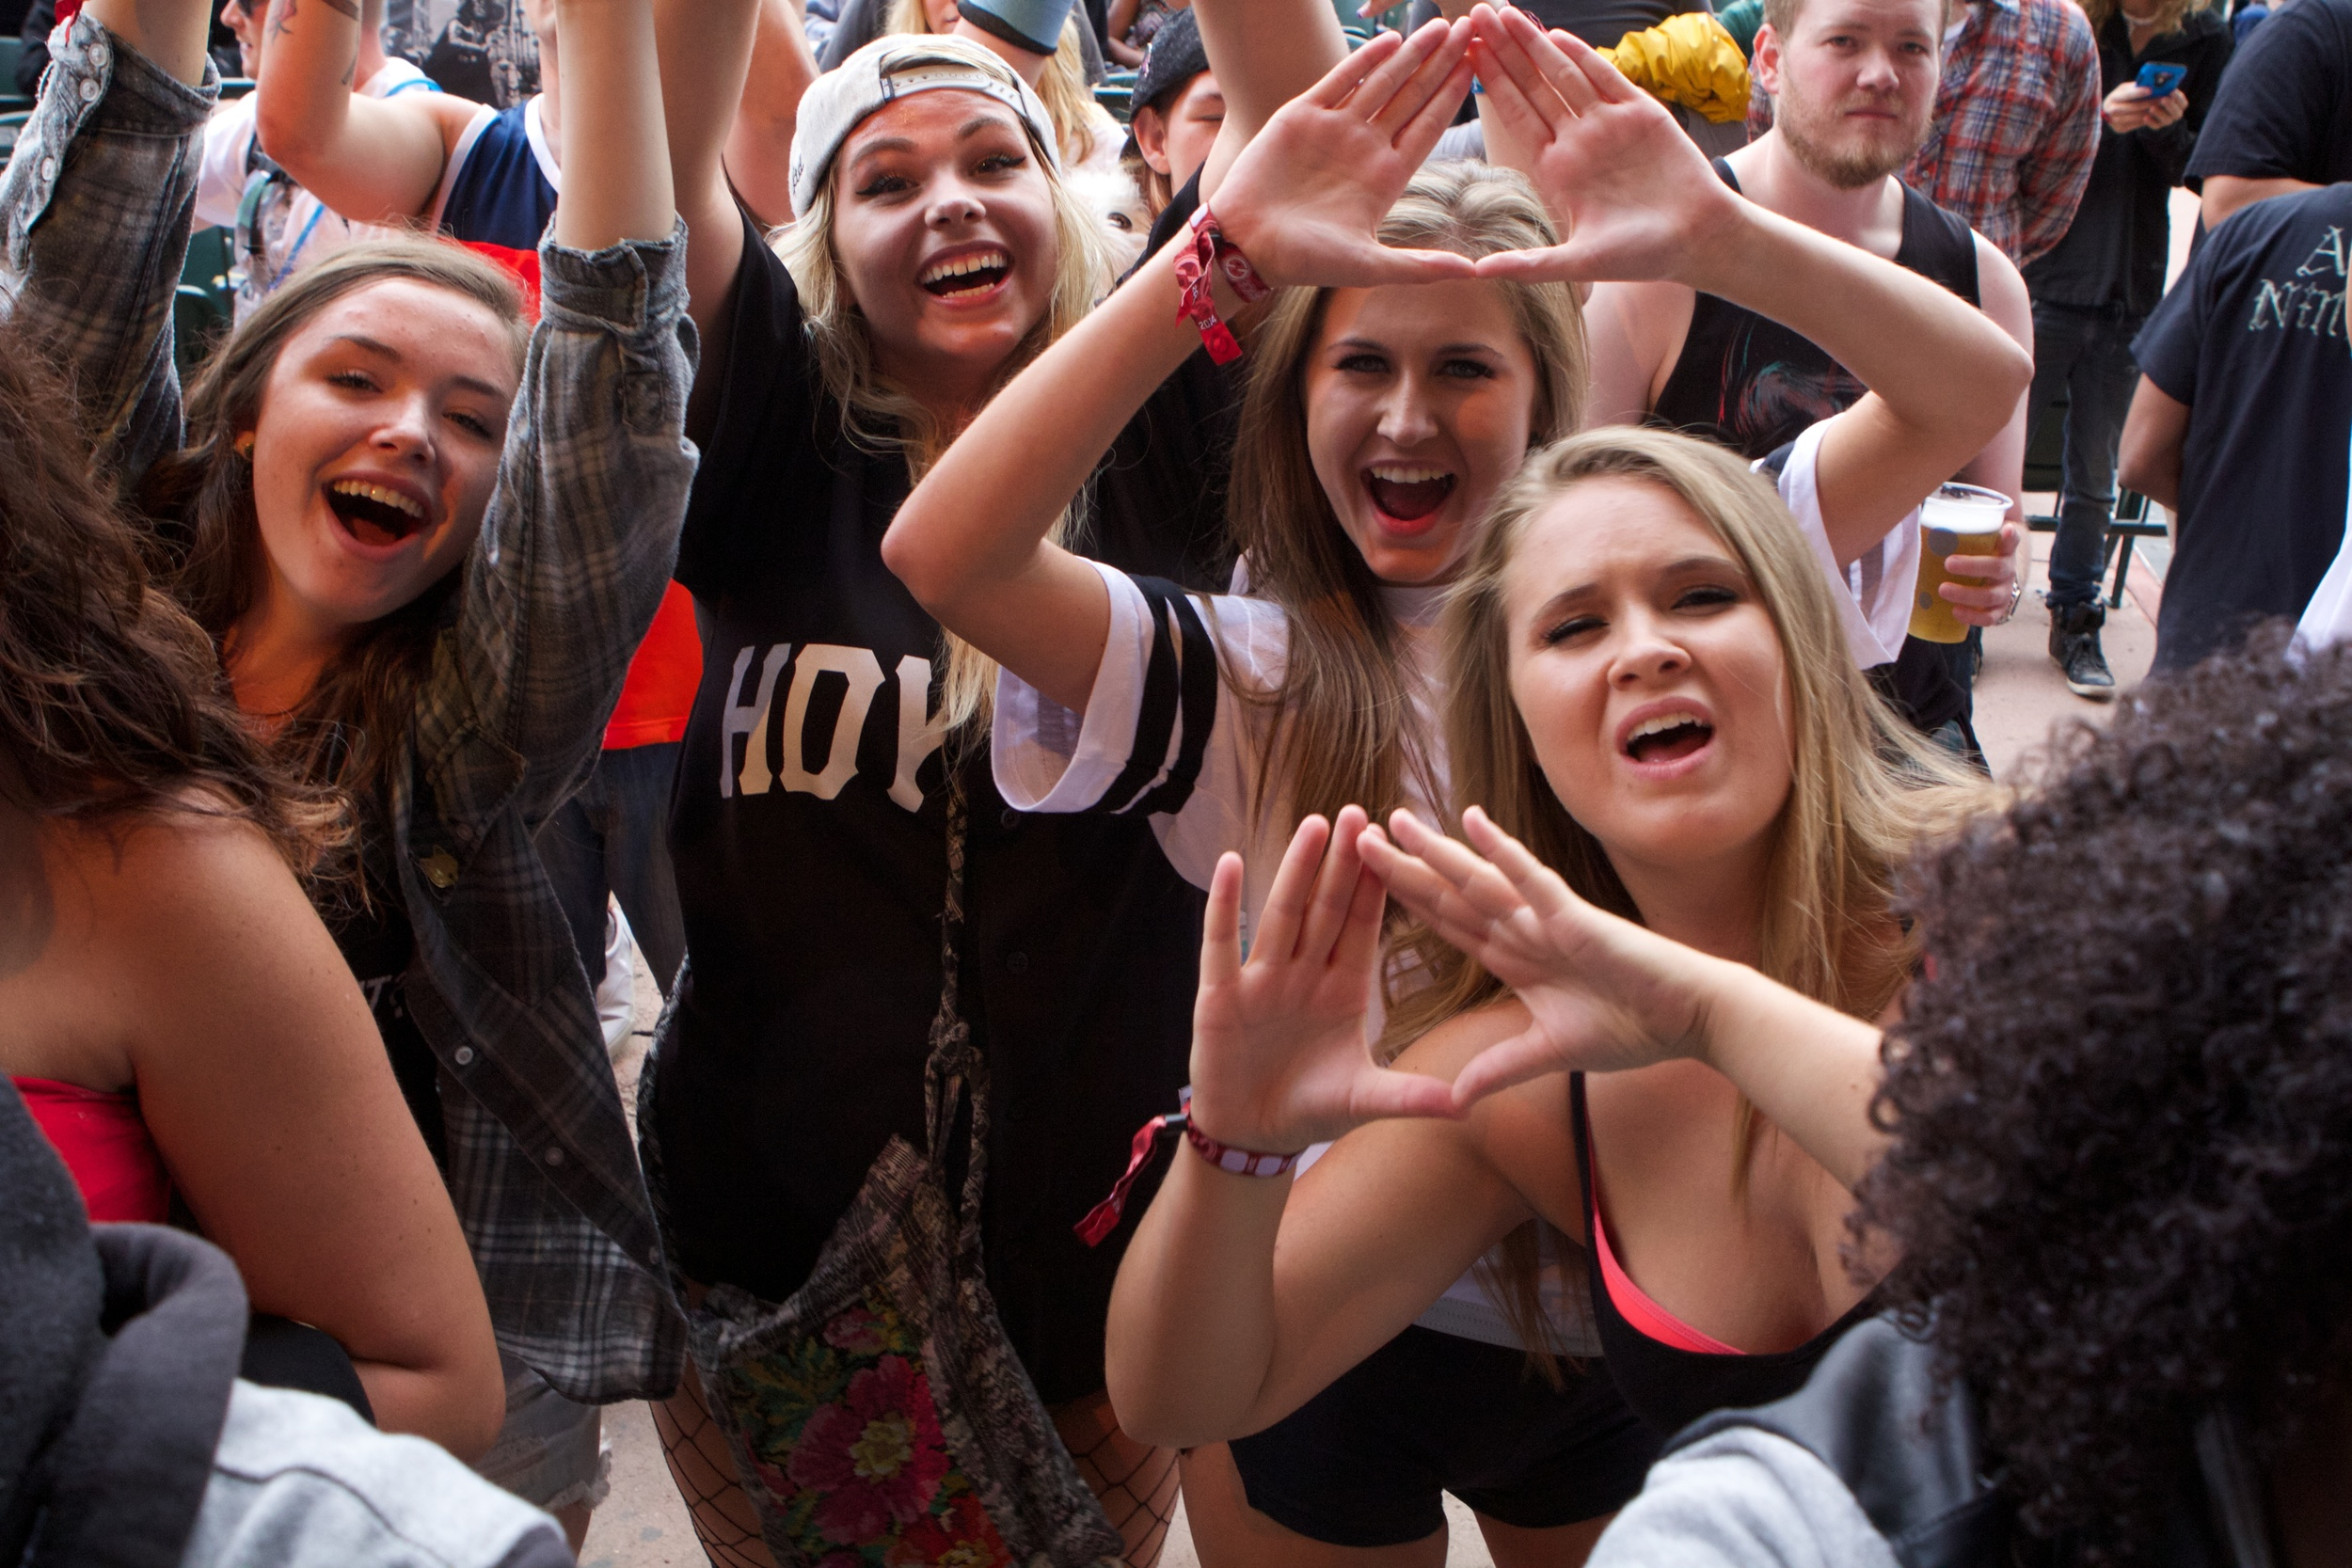 The HDYNATION was in the house for Flosstradamus (Photo Credit: Robert Castro)